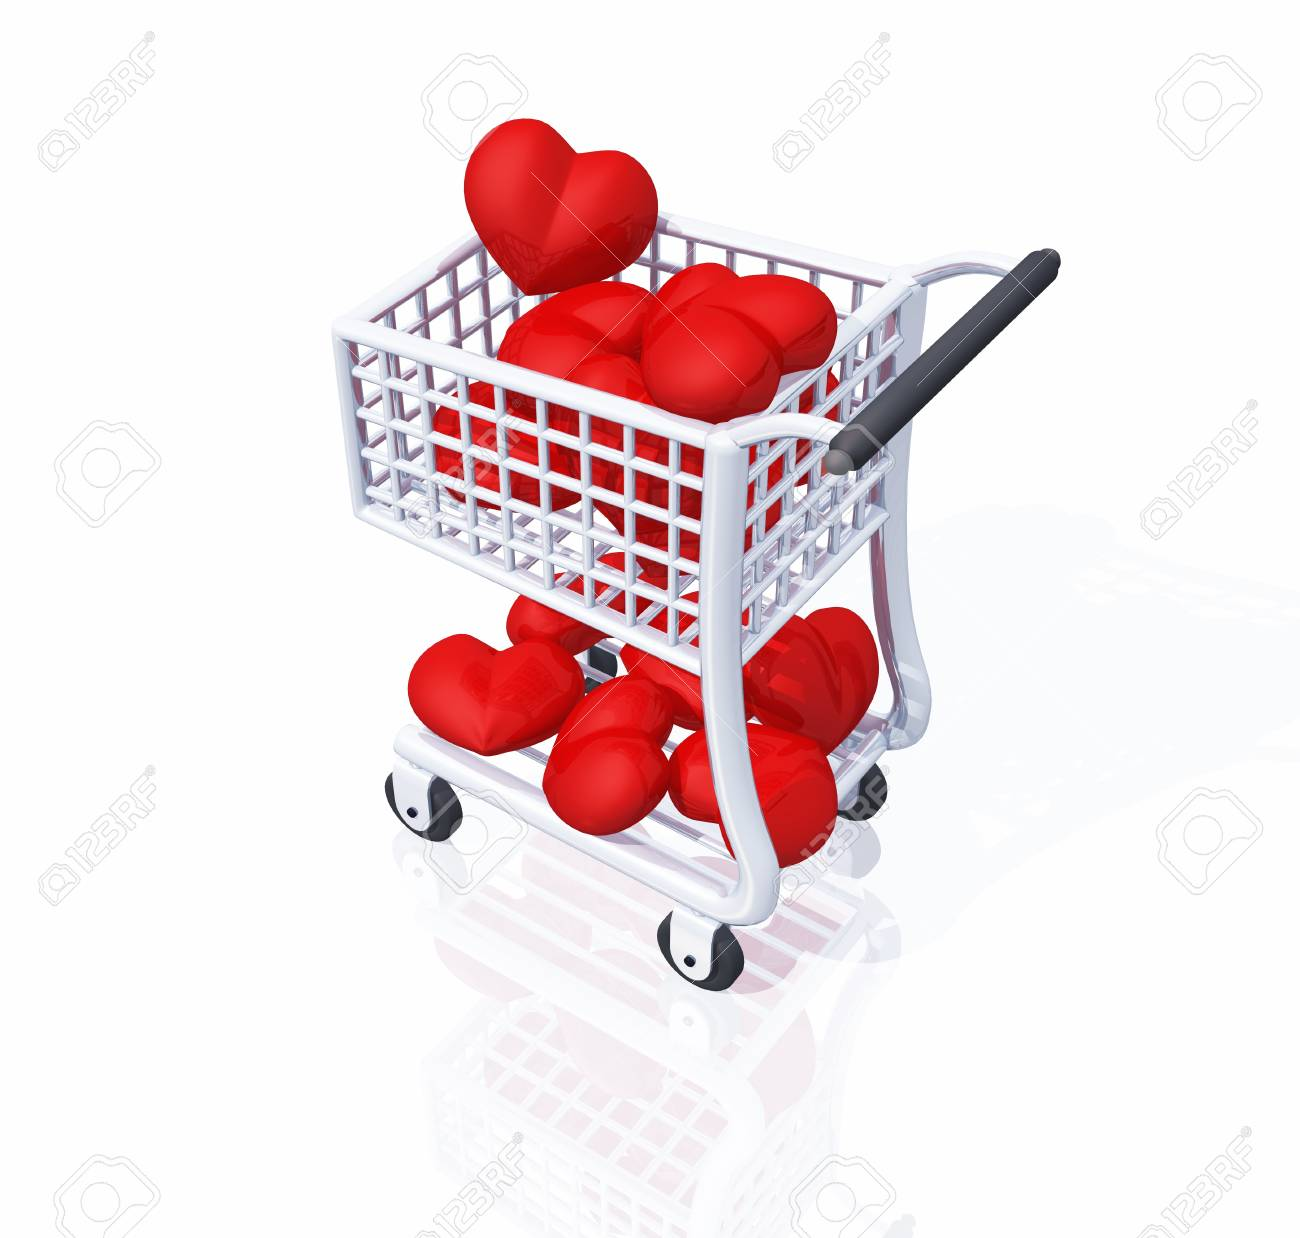 shopping cart full of red hearts Stock Photo - 8730622